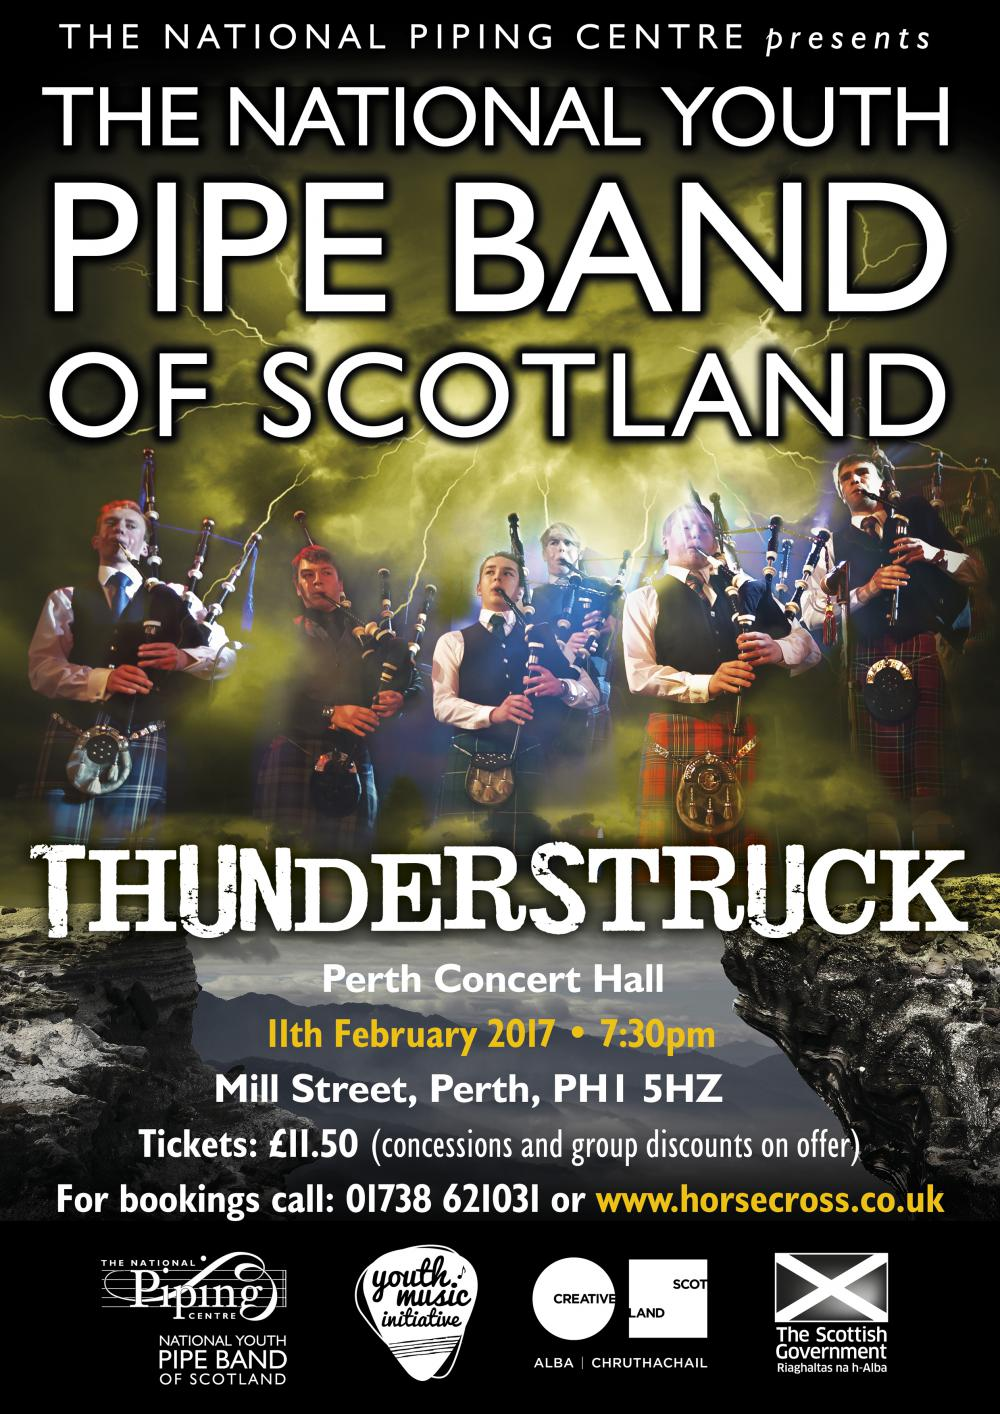 The National Youth Pipe Band of Scotland presents Thunderstruck